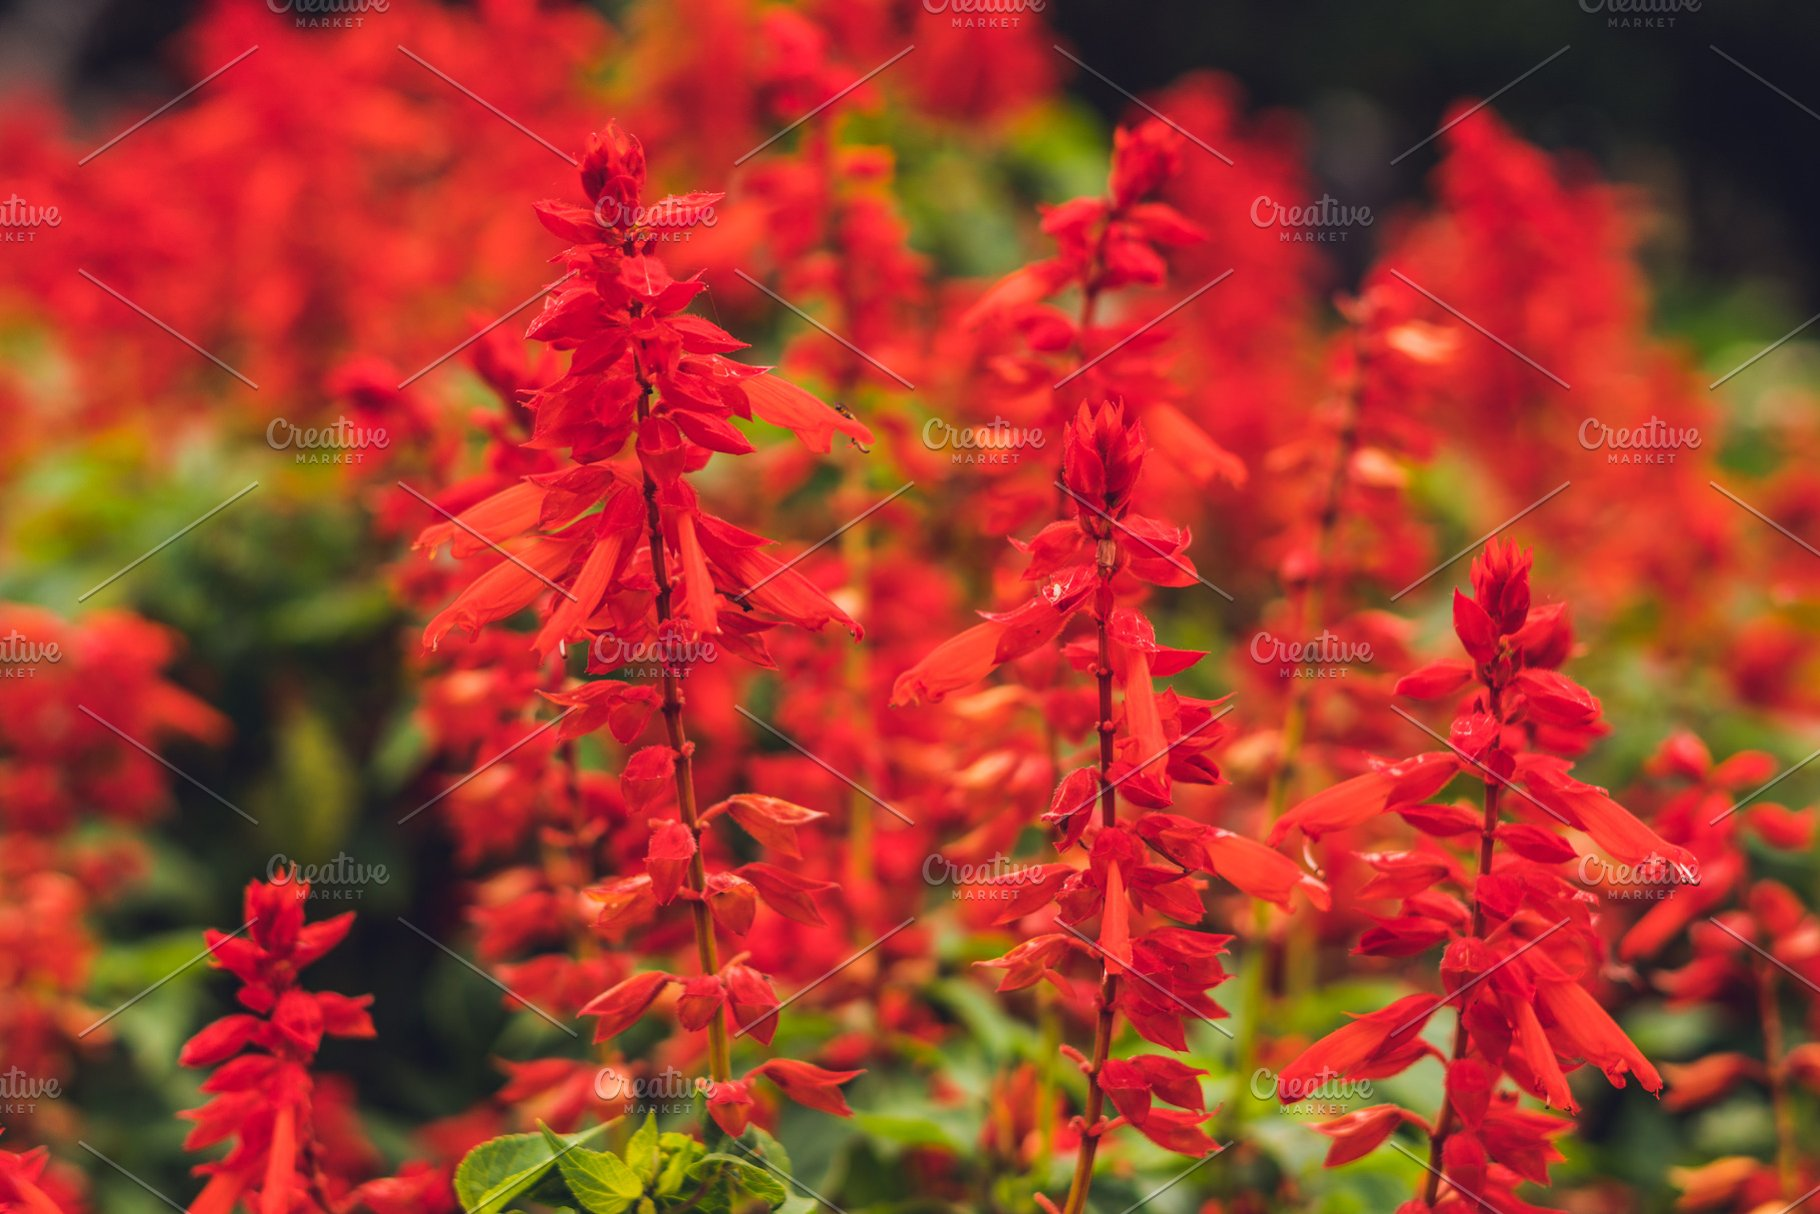 Red Salvia Splendens Flowers High Quality Nature Stock Photos